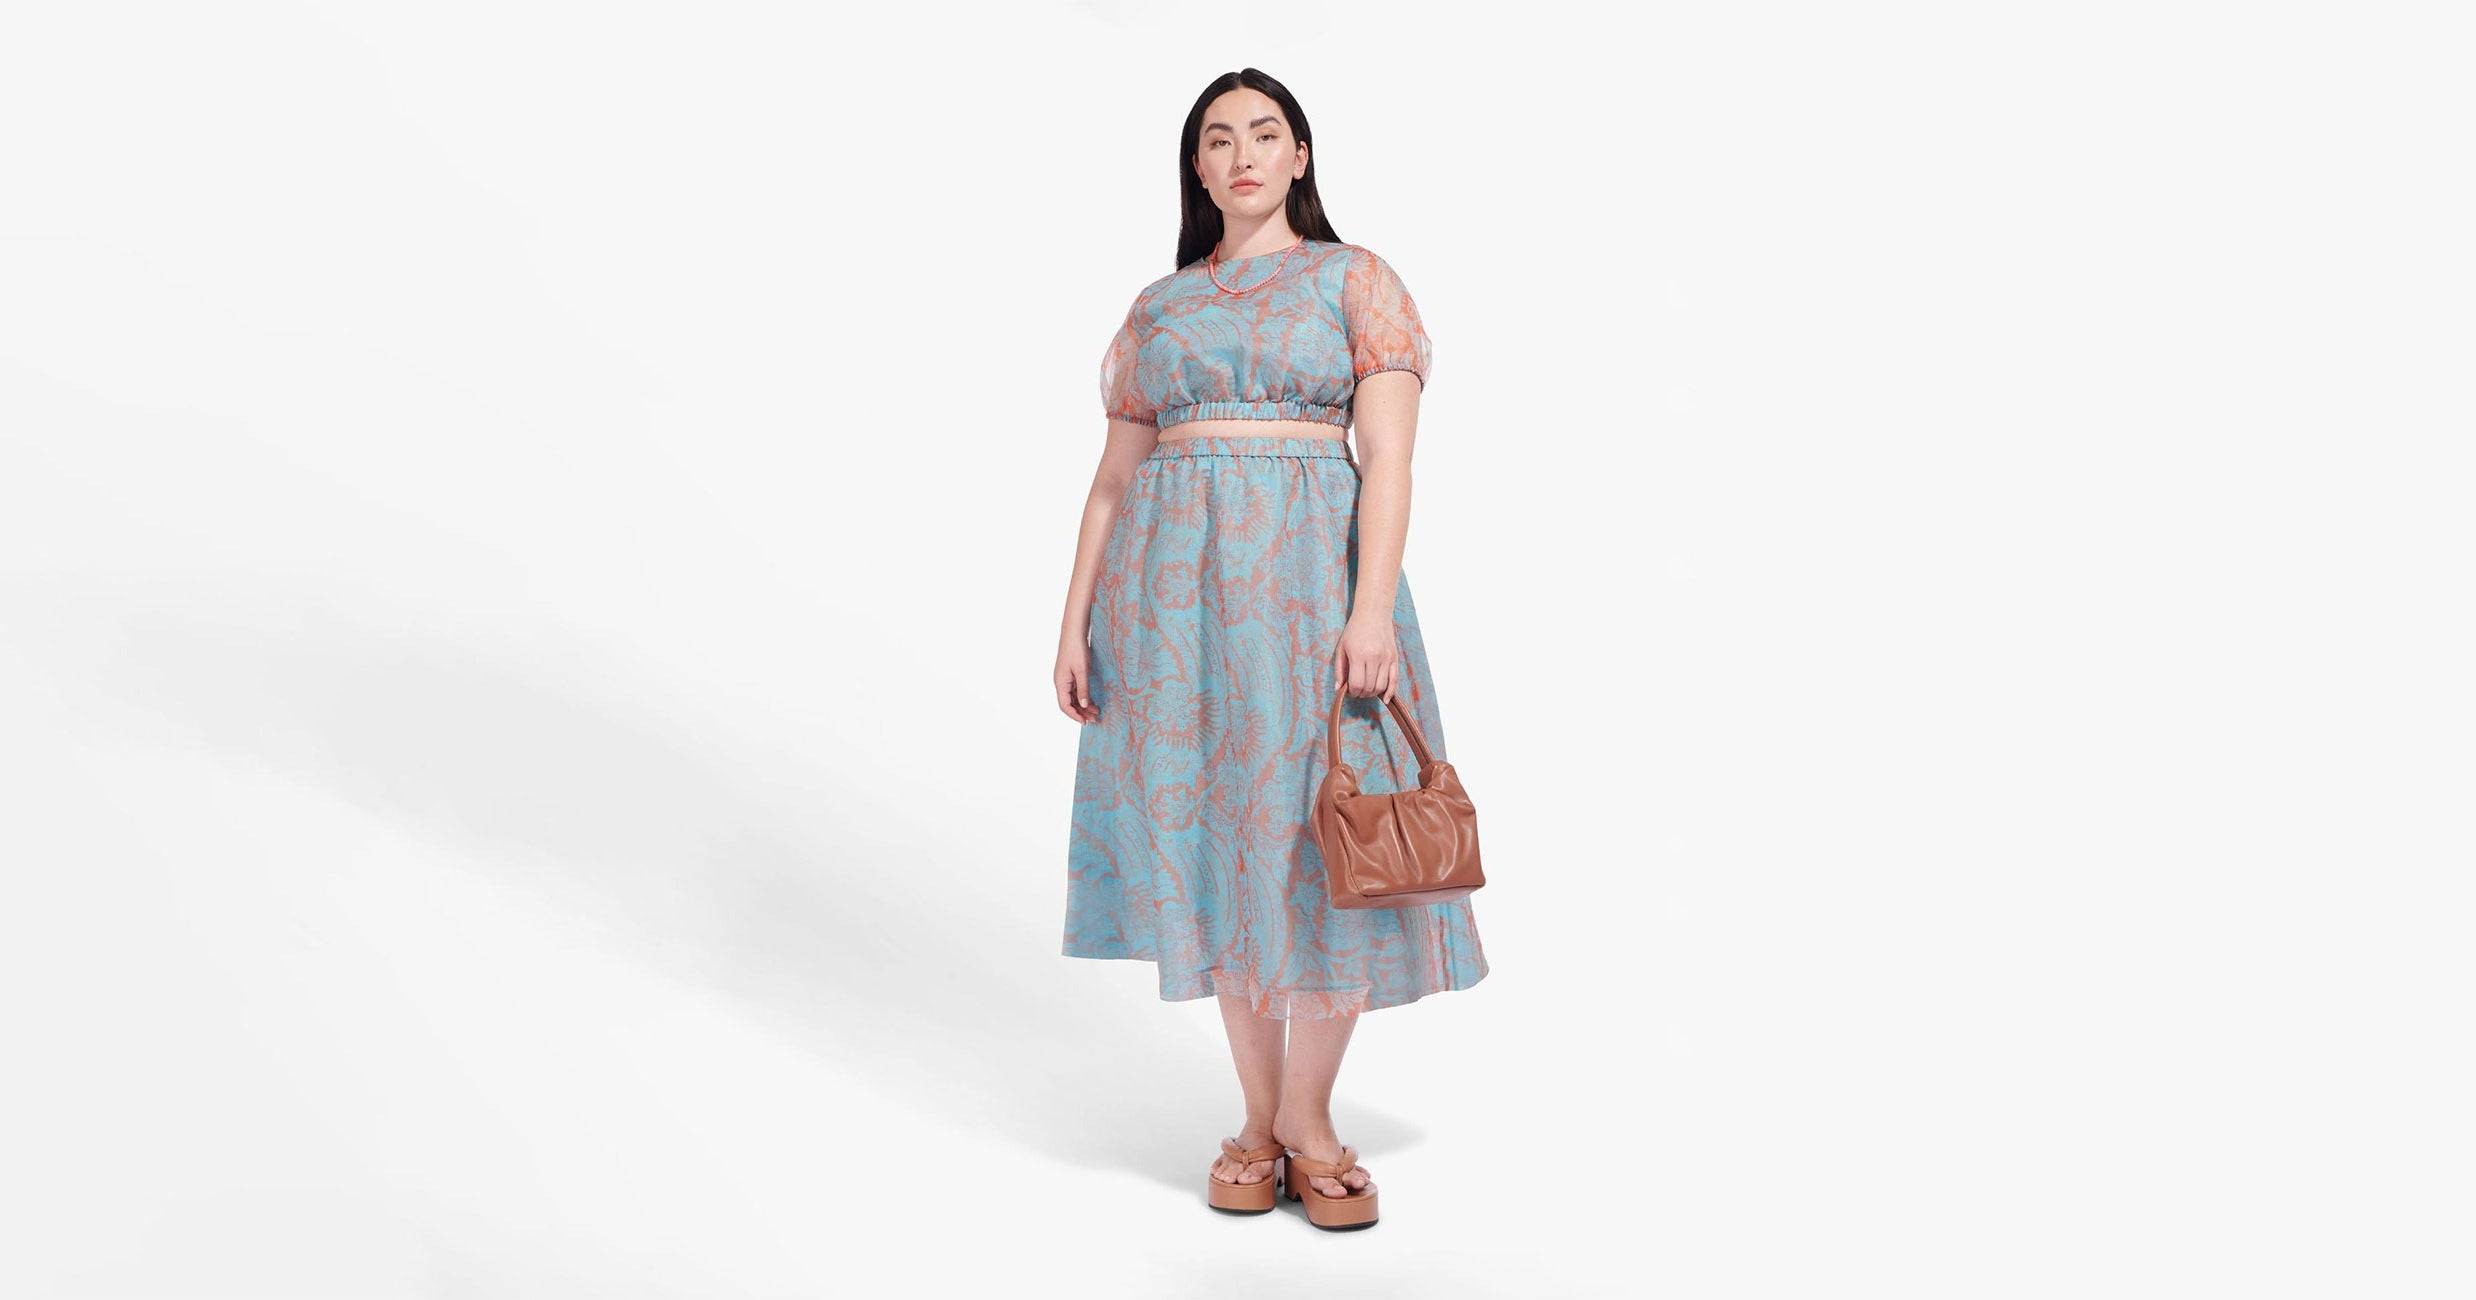 STAUD Quietly Dropped A Selection Of Plus Size Offerings